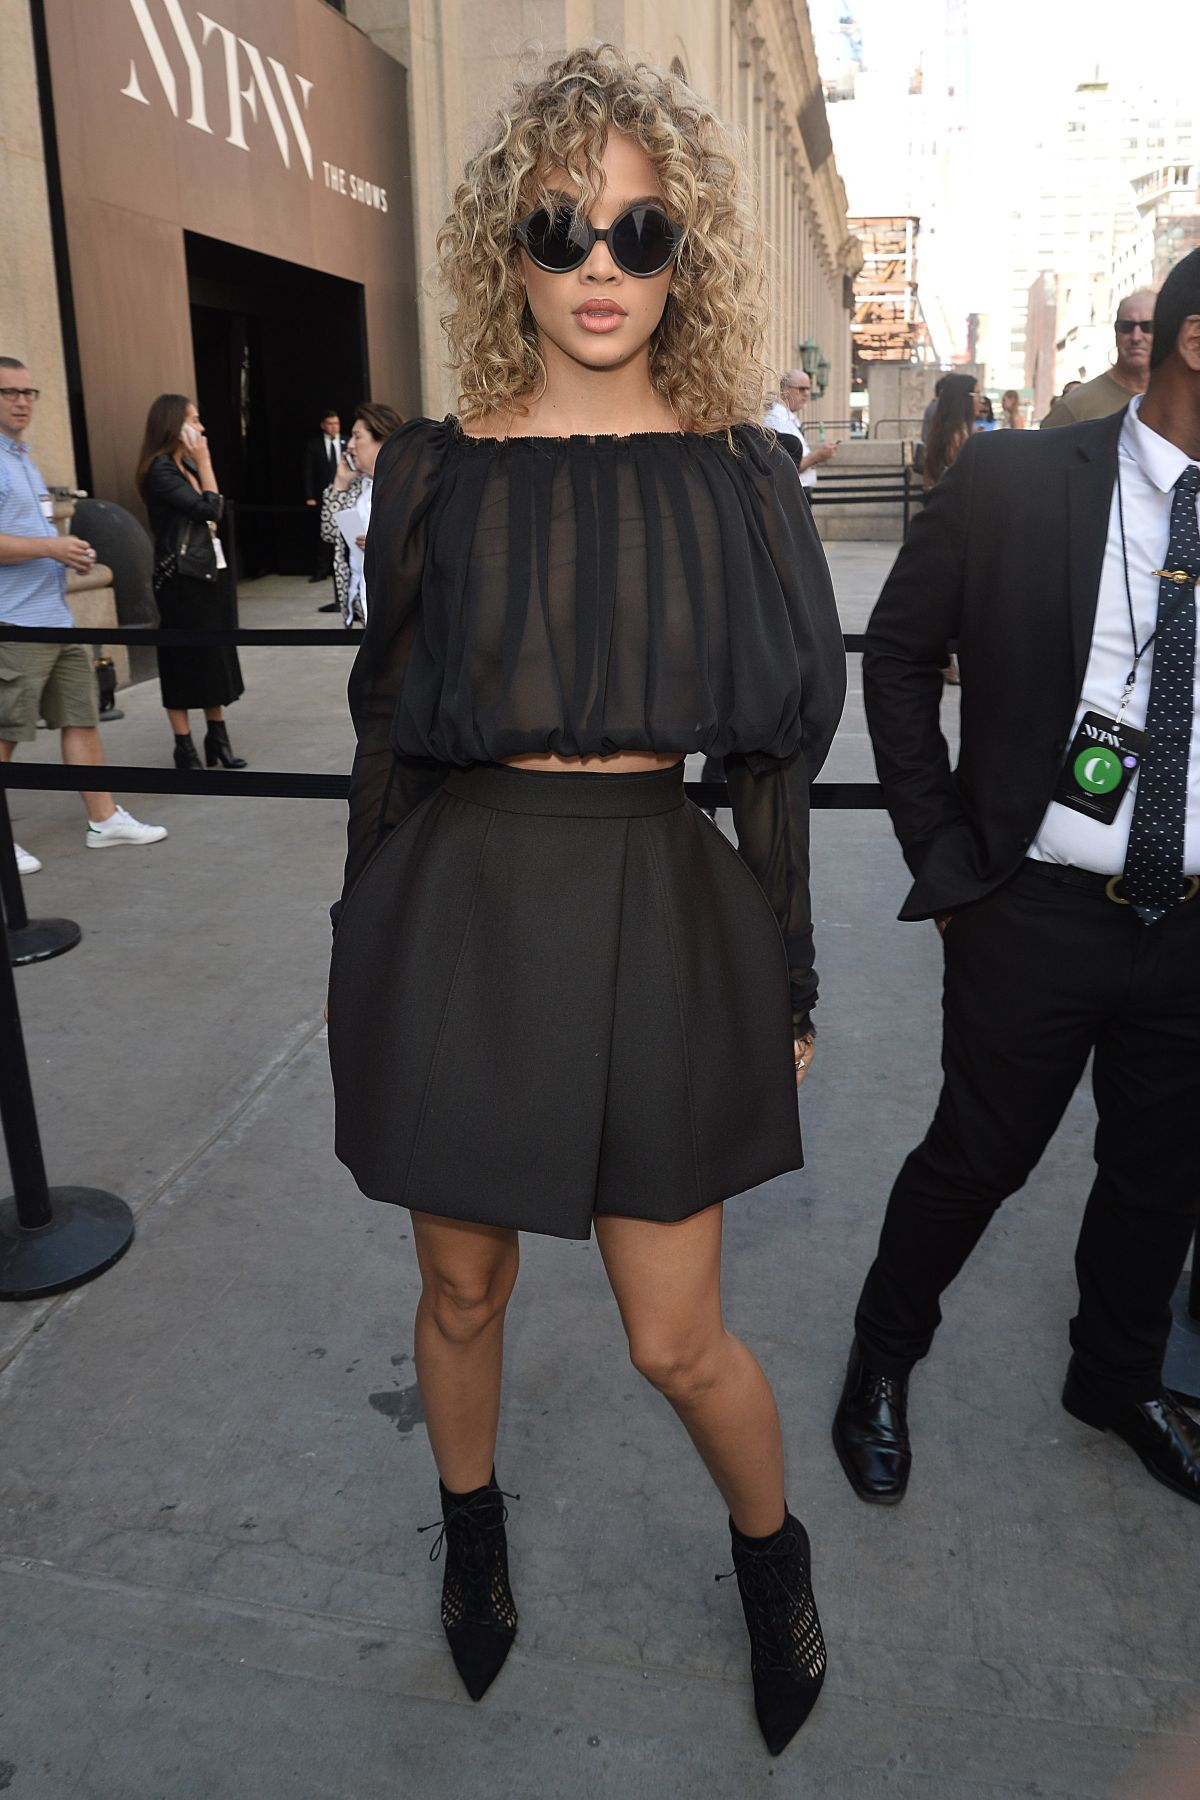 JASMINE SANDERS Arrives at Vera Wang Fashion Show in New York 09/13/2016